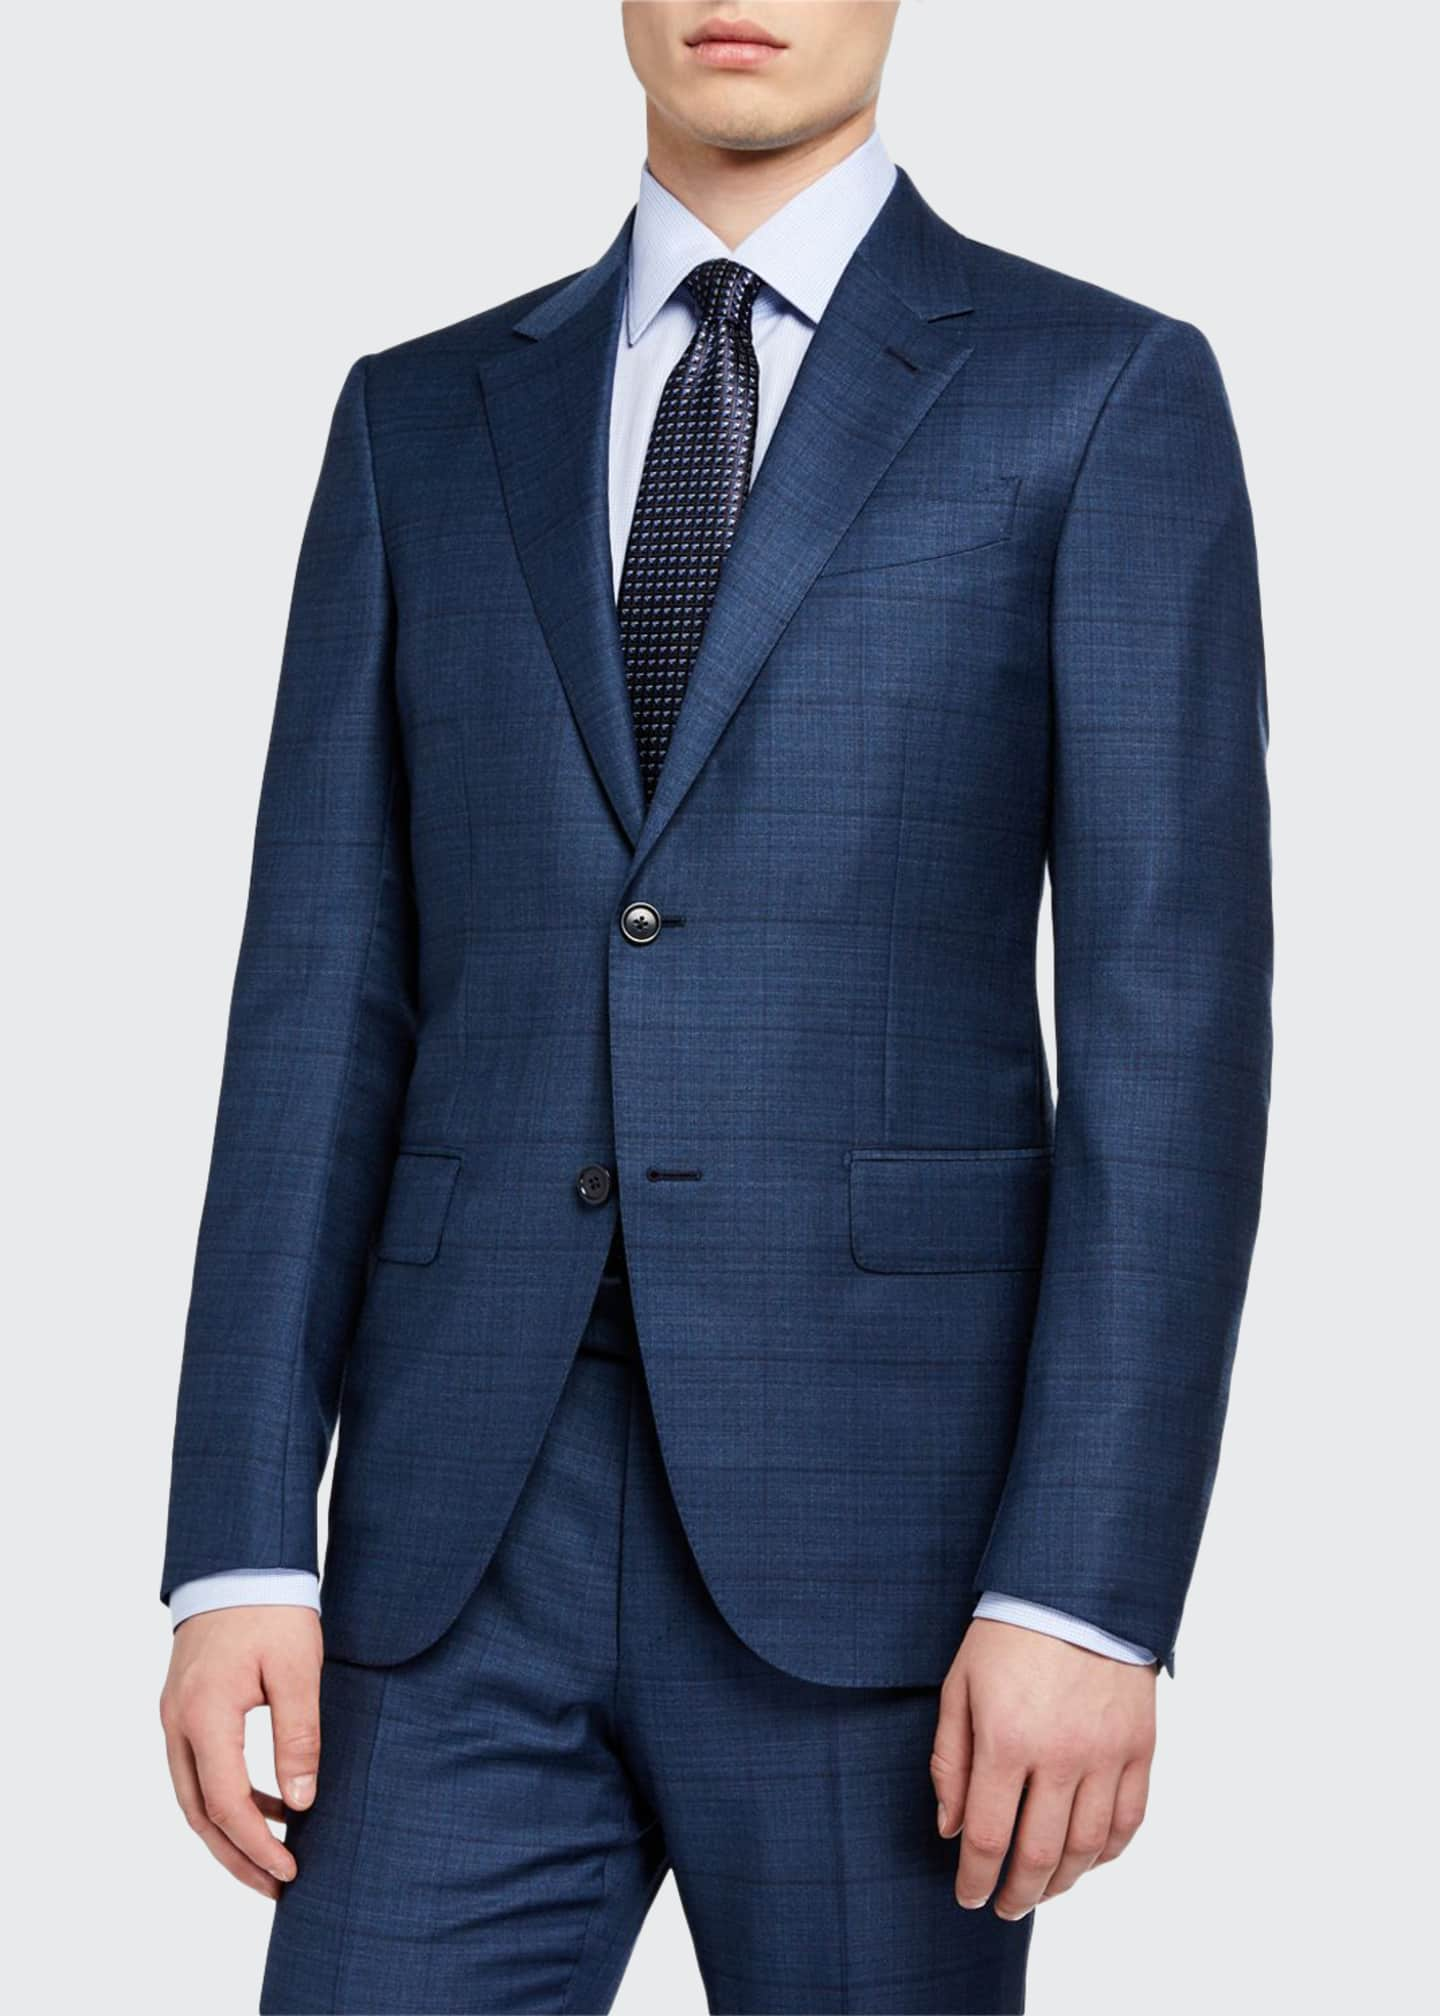 Ermenegildo Zegna Men's Windowpane Wool/Silk Two-Piece Suit, Blue